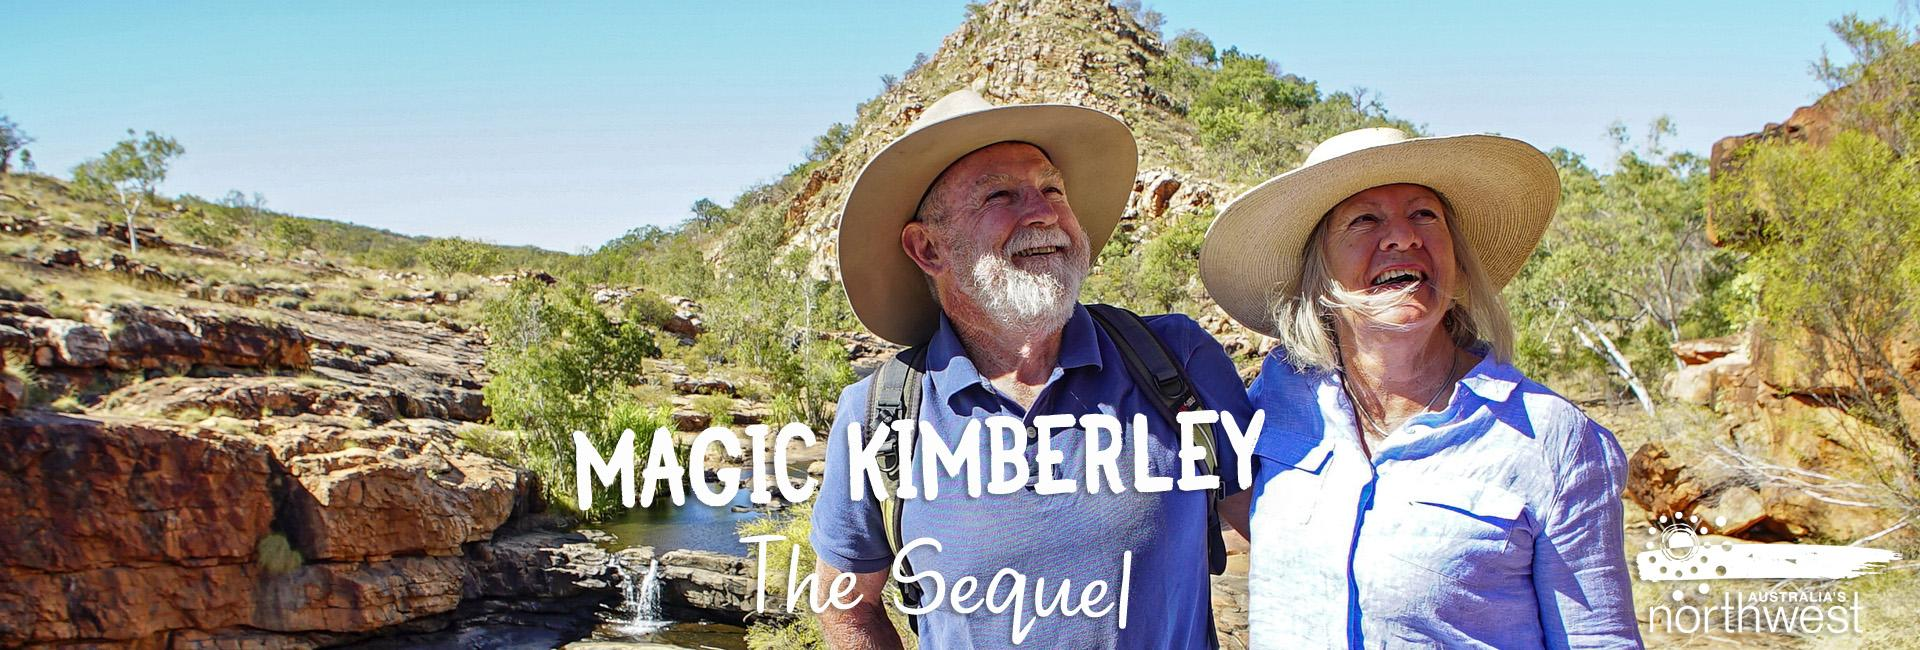 Magic Kimberley: The Sequel - Denise & Michael at Bell Gorge, in the Kimberley region of Western Australia